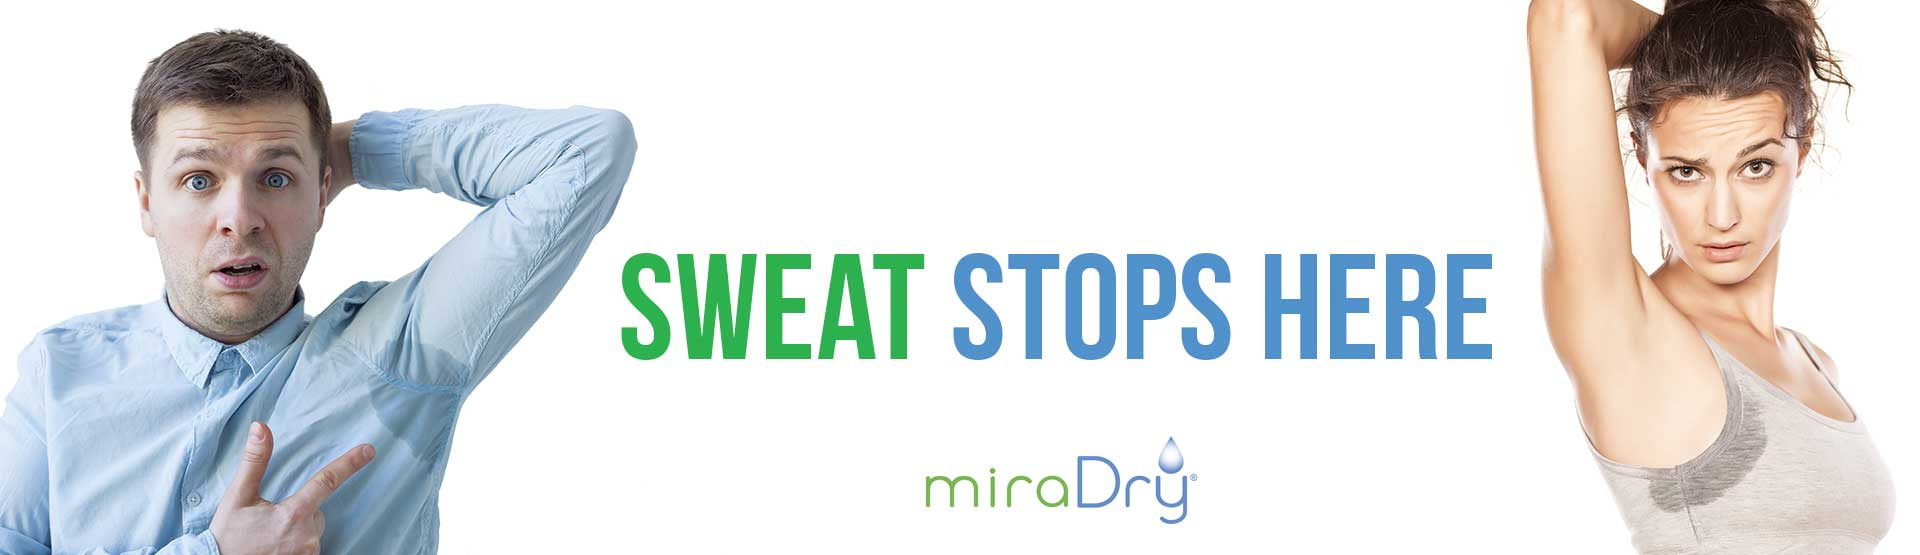 sweat stops here miradry